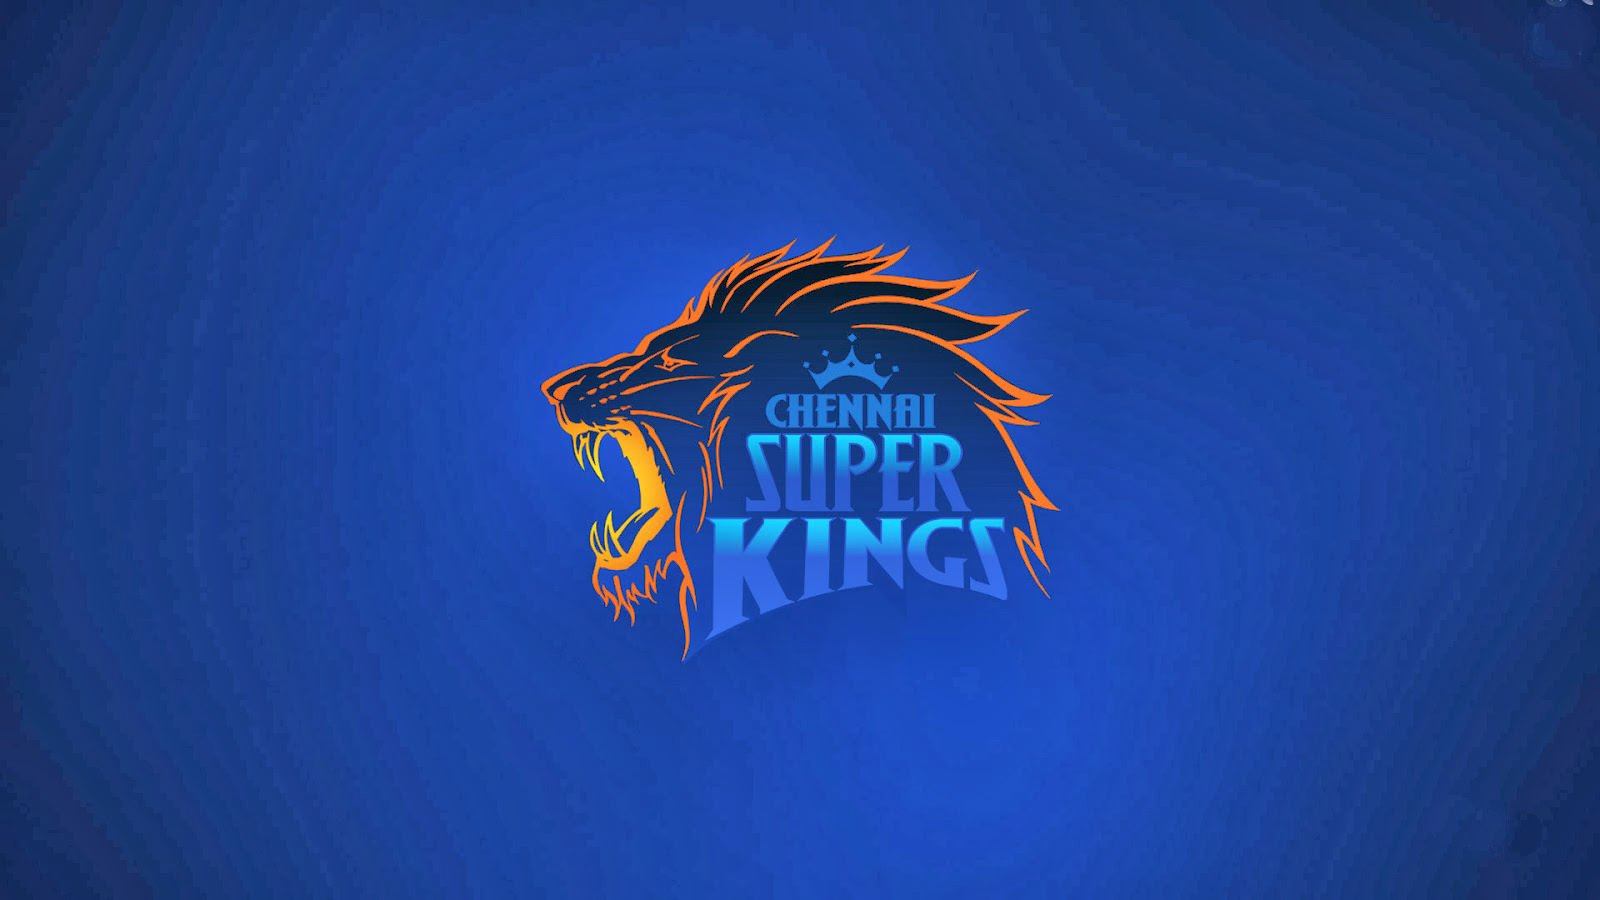 ipl csk chennai super kings logo blue background hd wallpaper